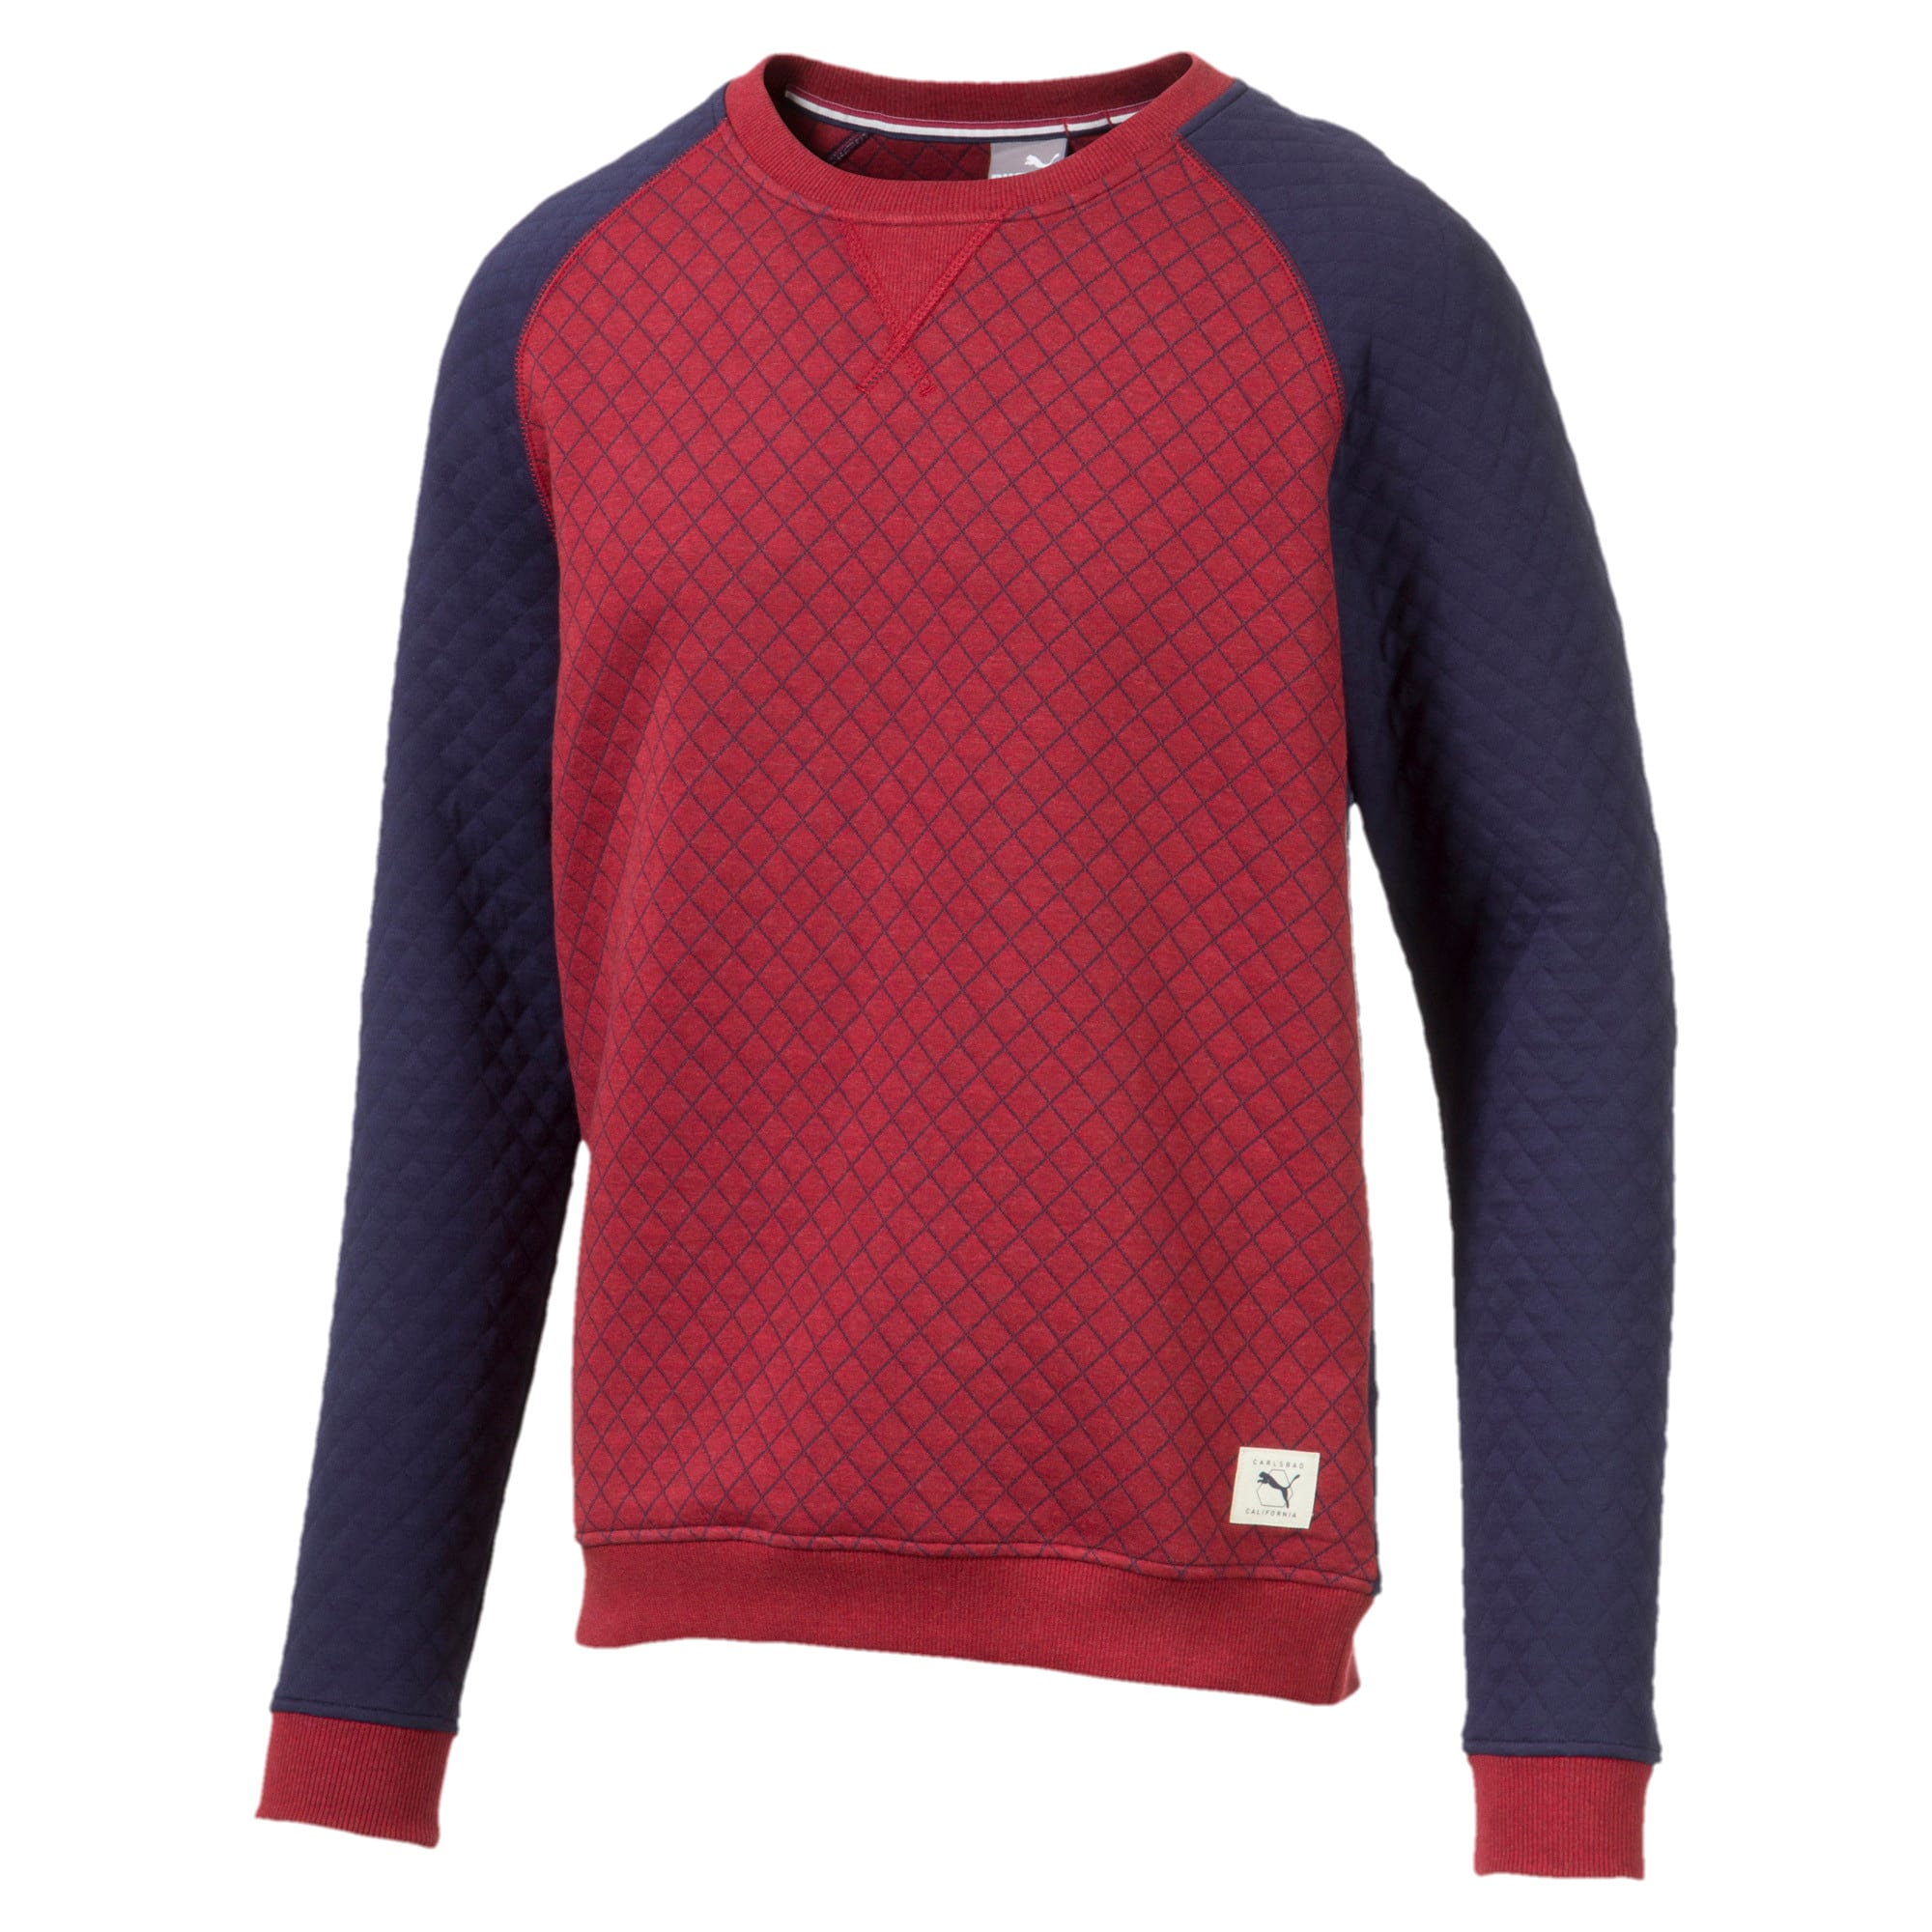 Thumbnail 5 of Gestepptes Herren Golf Sweatshirt, Rhubarb Heather, medium